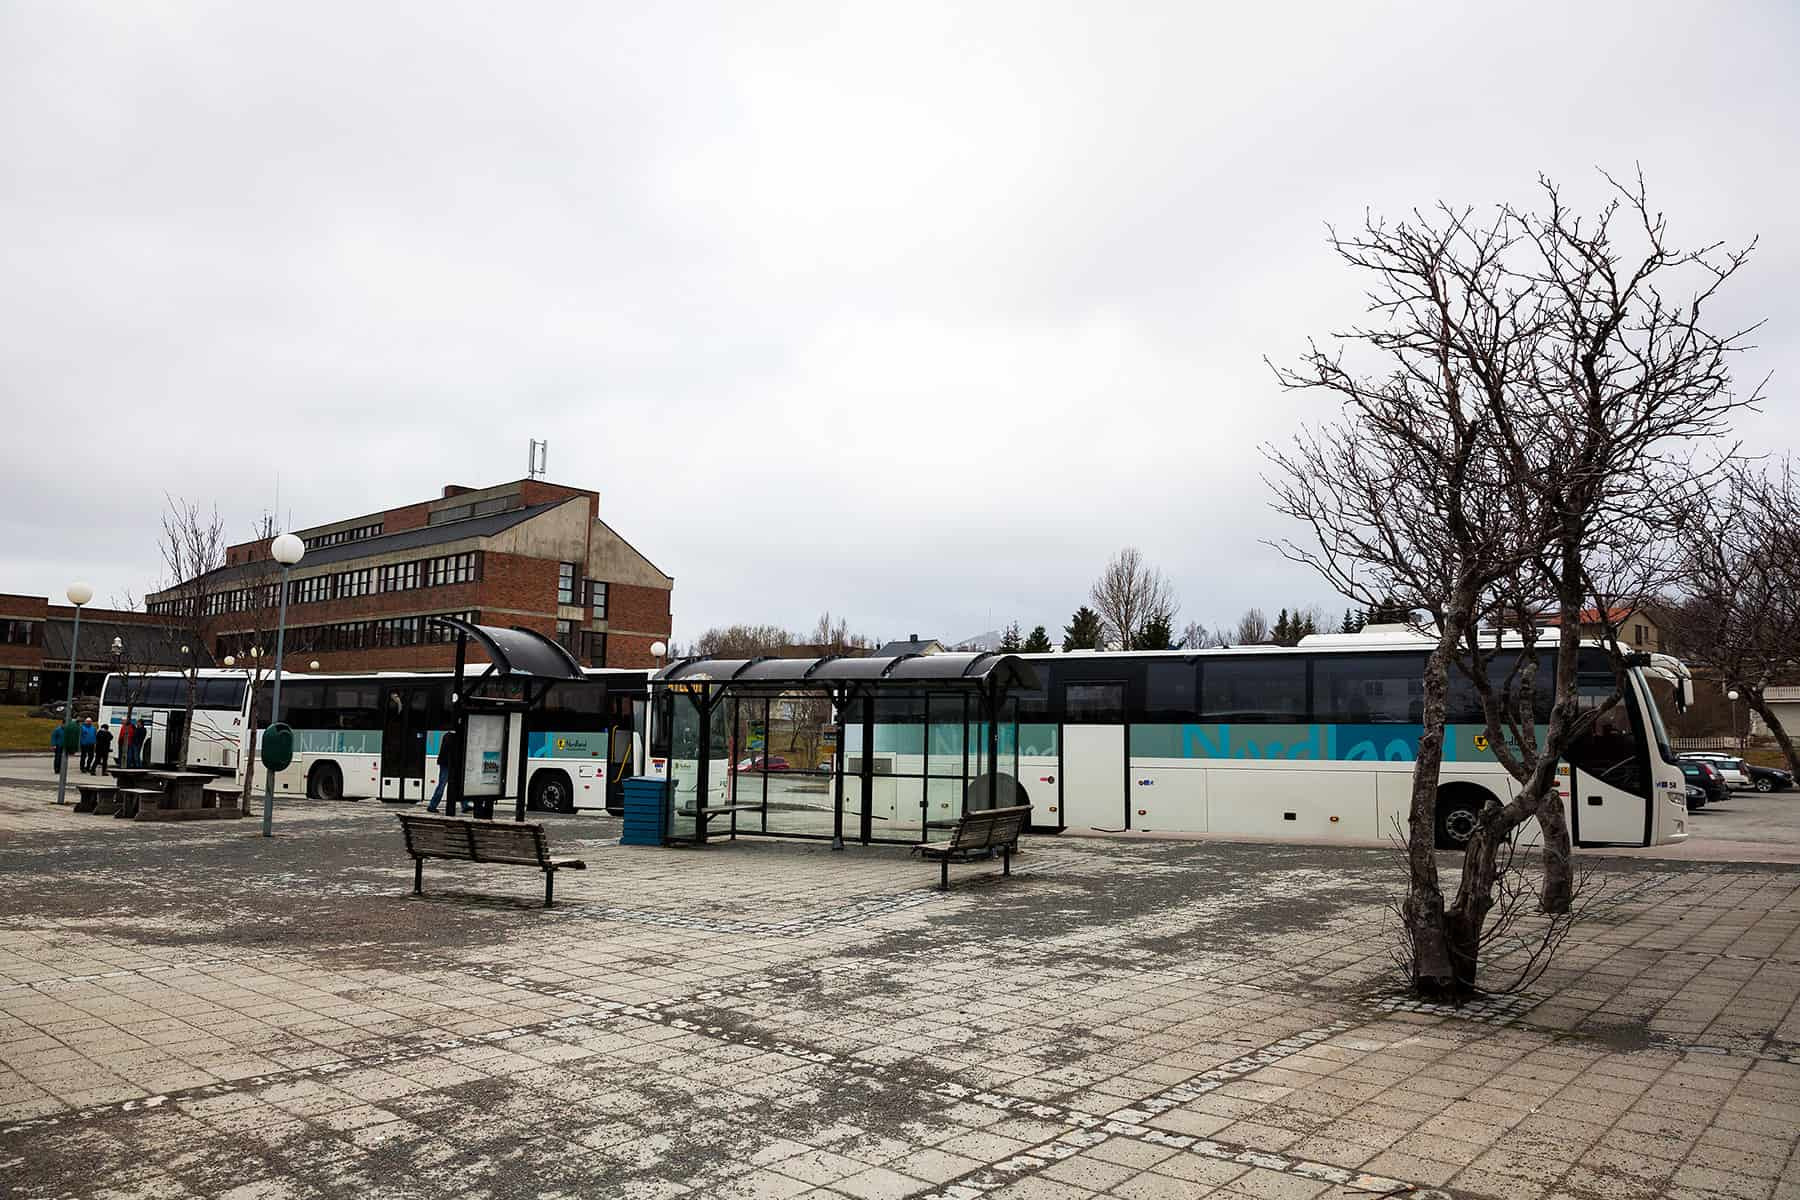 In Leknes is a central bus station with several possible interchanges.